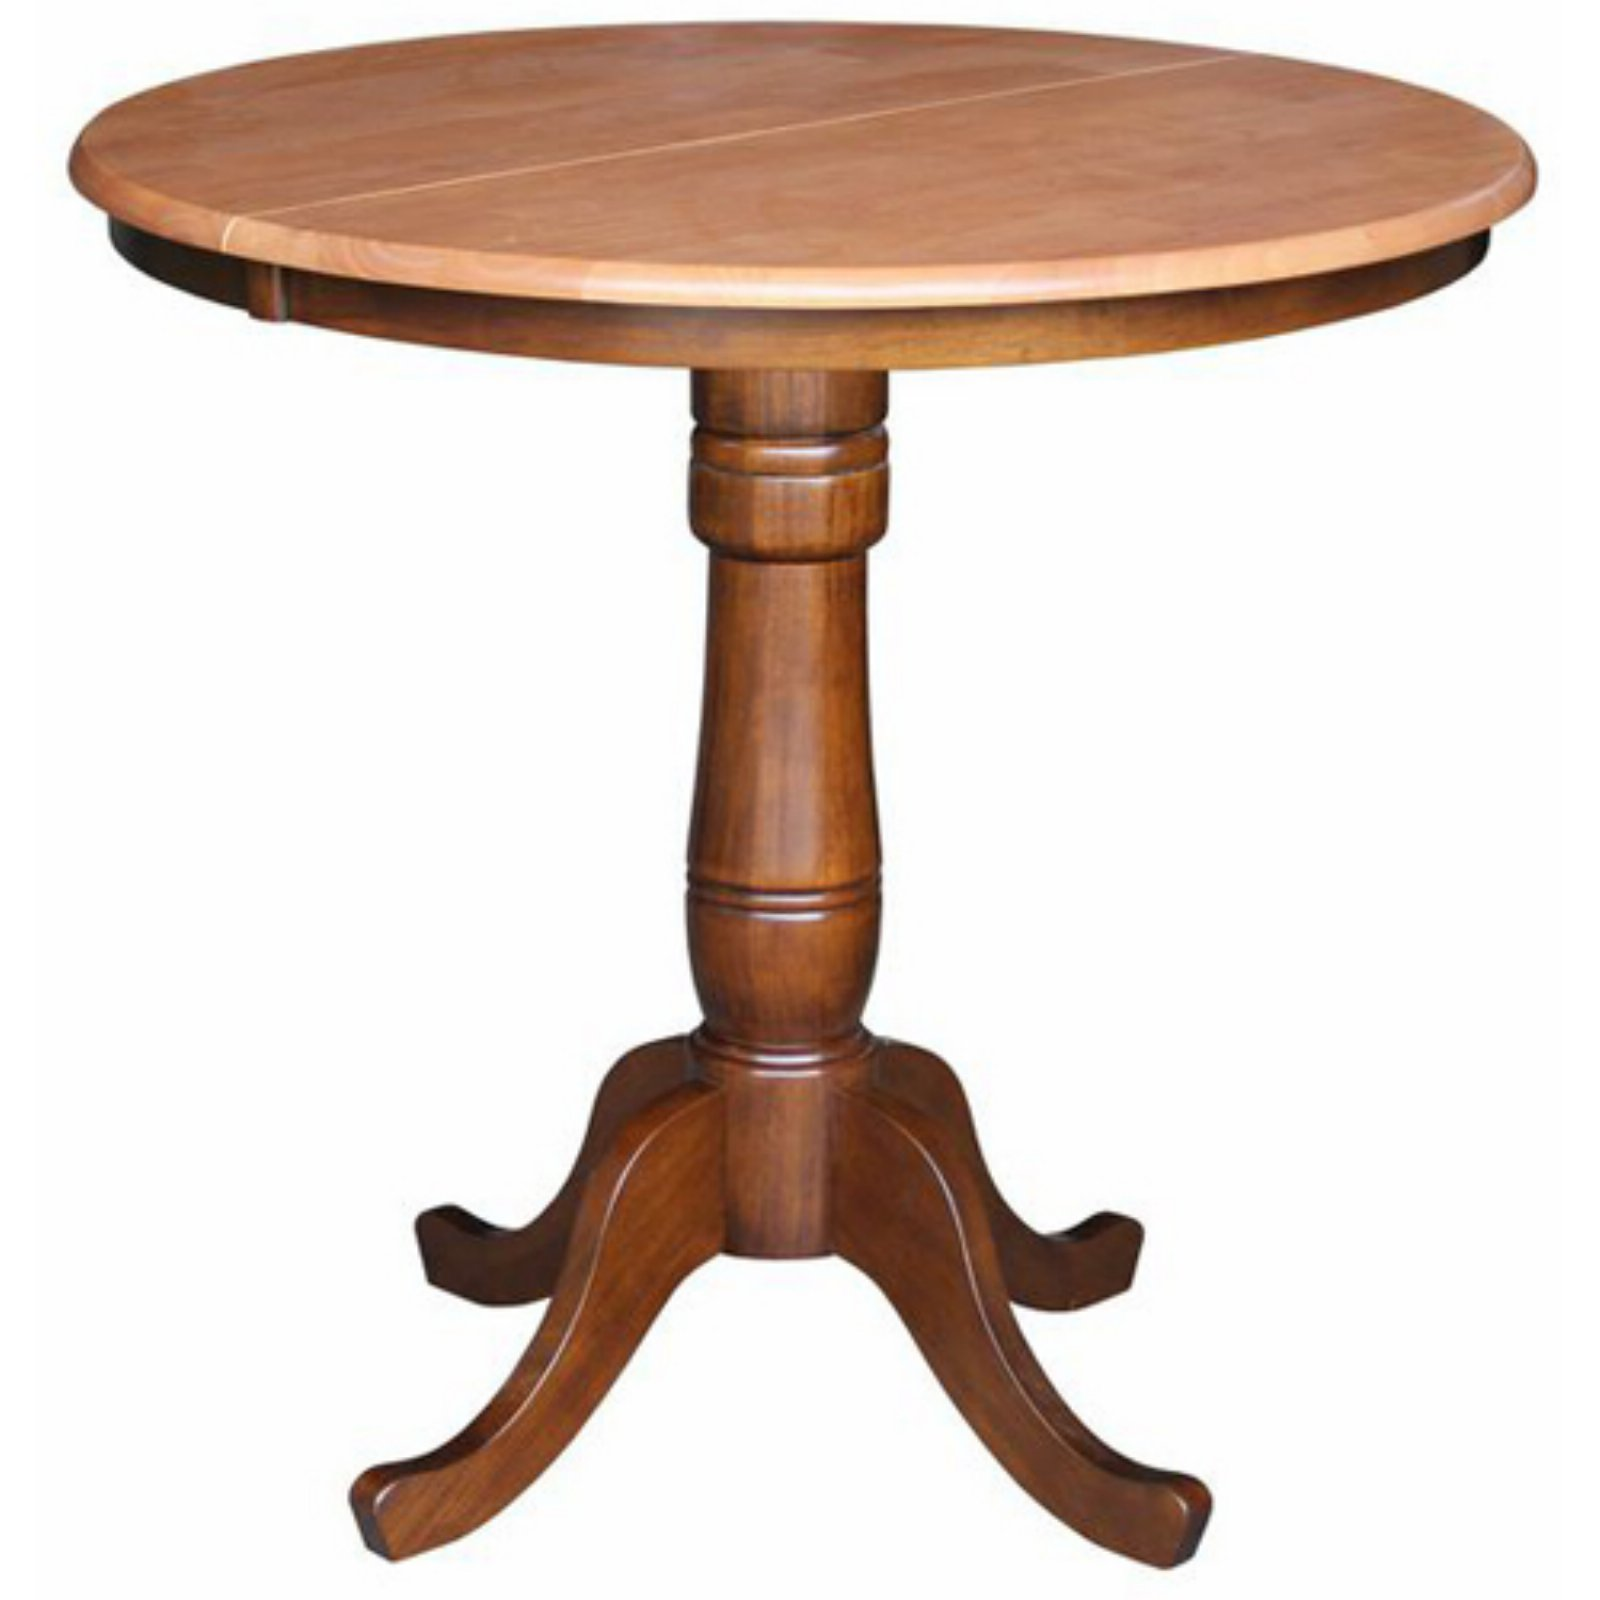 """36"""" Round Top Pedestal Table with 12"""" Leaf, 34.9""""H"""